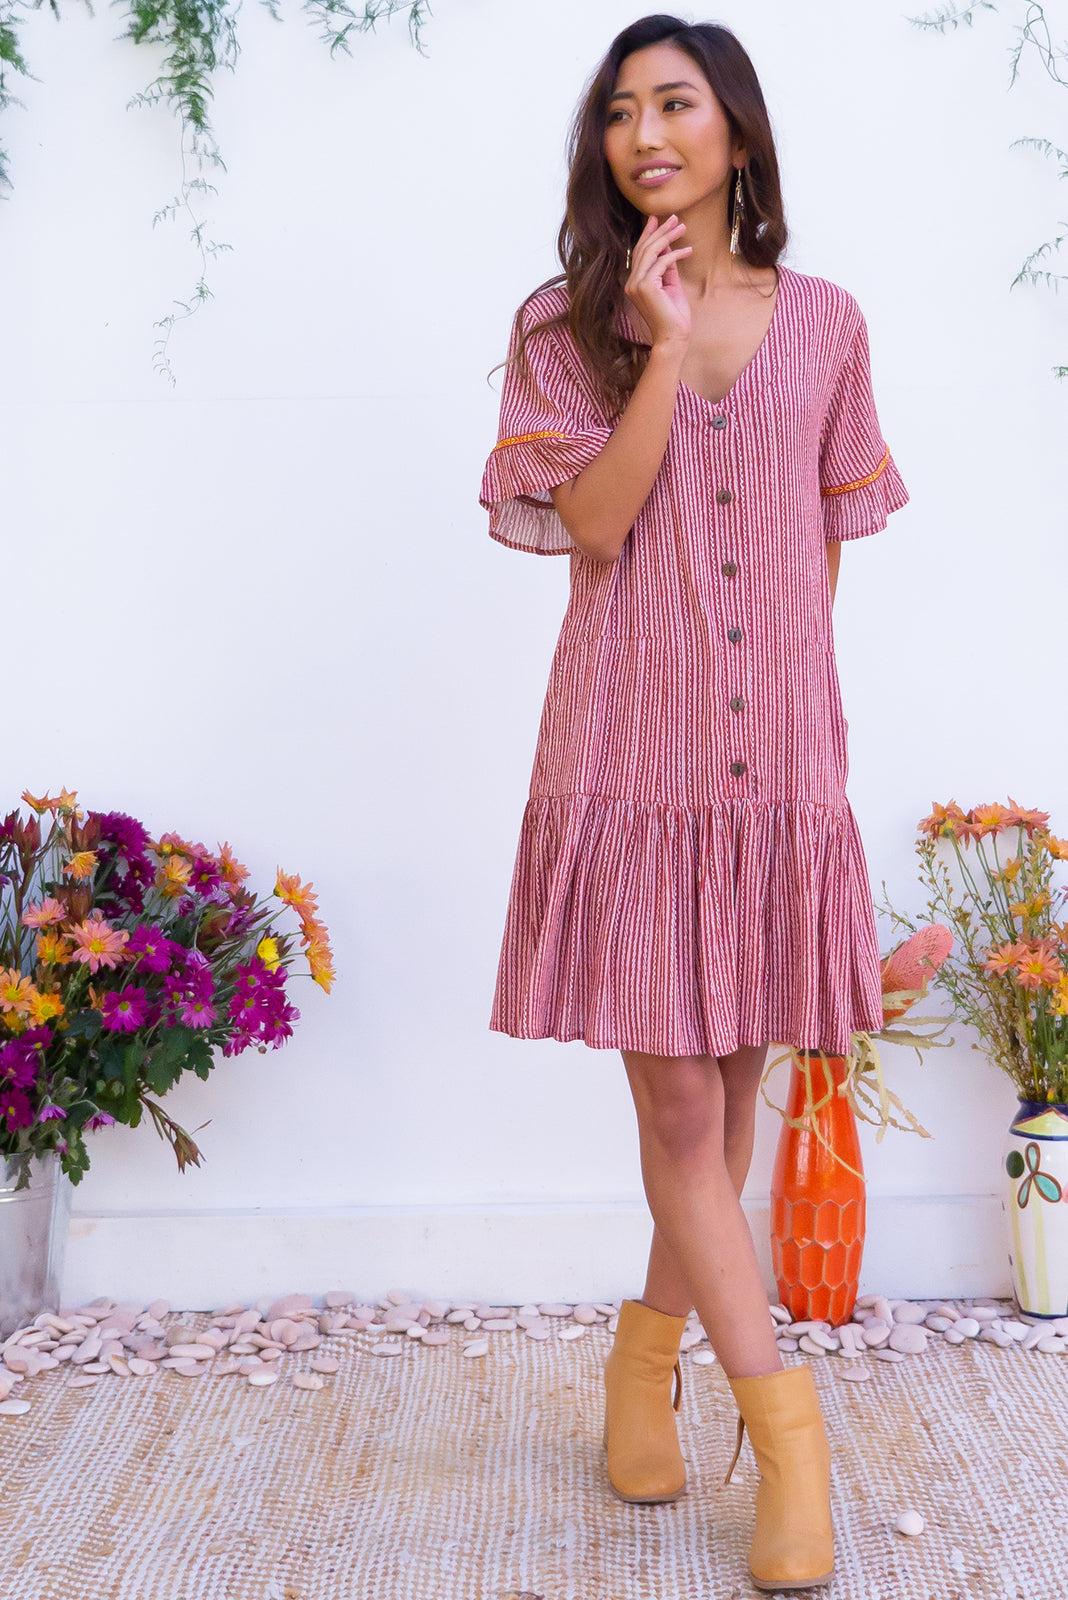 Lucy Ginger Beer Dress features a frilled drop waist, button front, soft frill sleeves and a feature rattan buck belt the fabric is a soft crinkle textured woven 100% rayon in a rust coloured stripe.